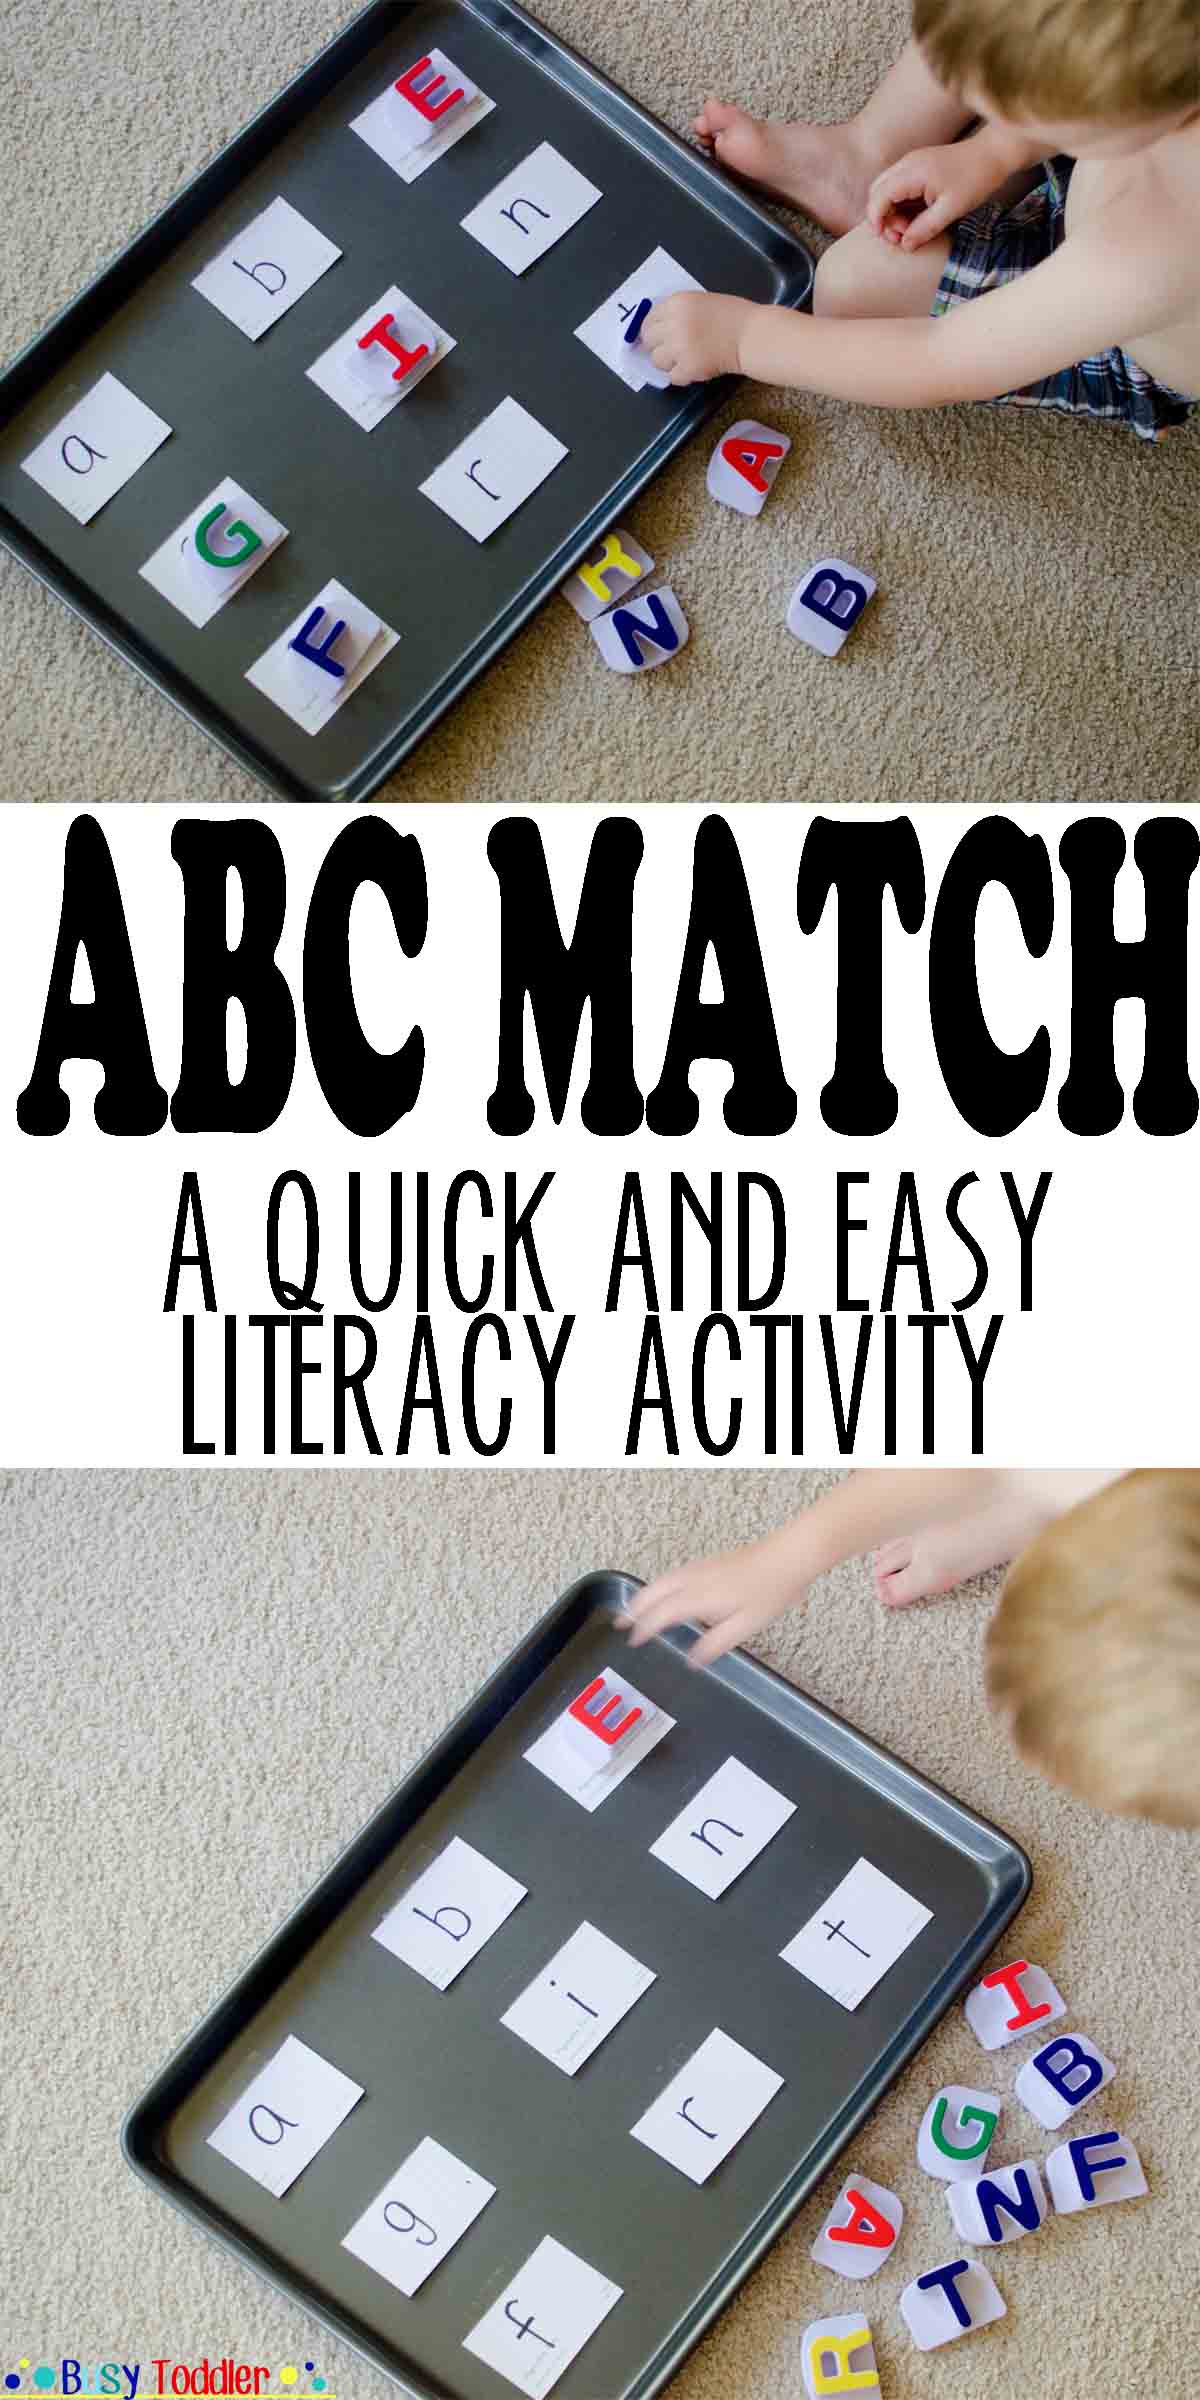 ABC Match: a quick and easy literacy activity